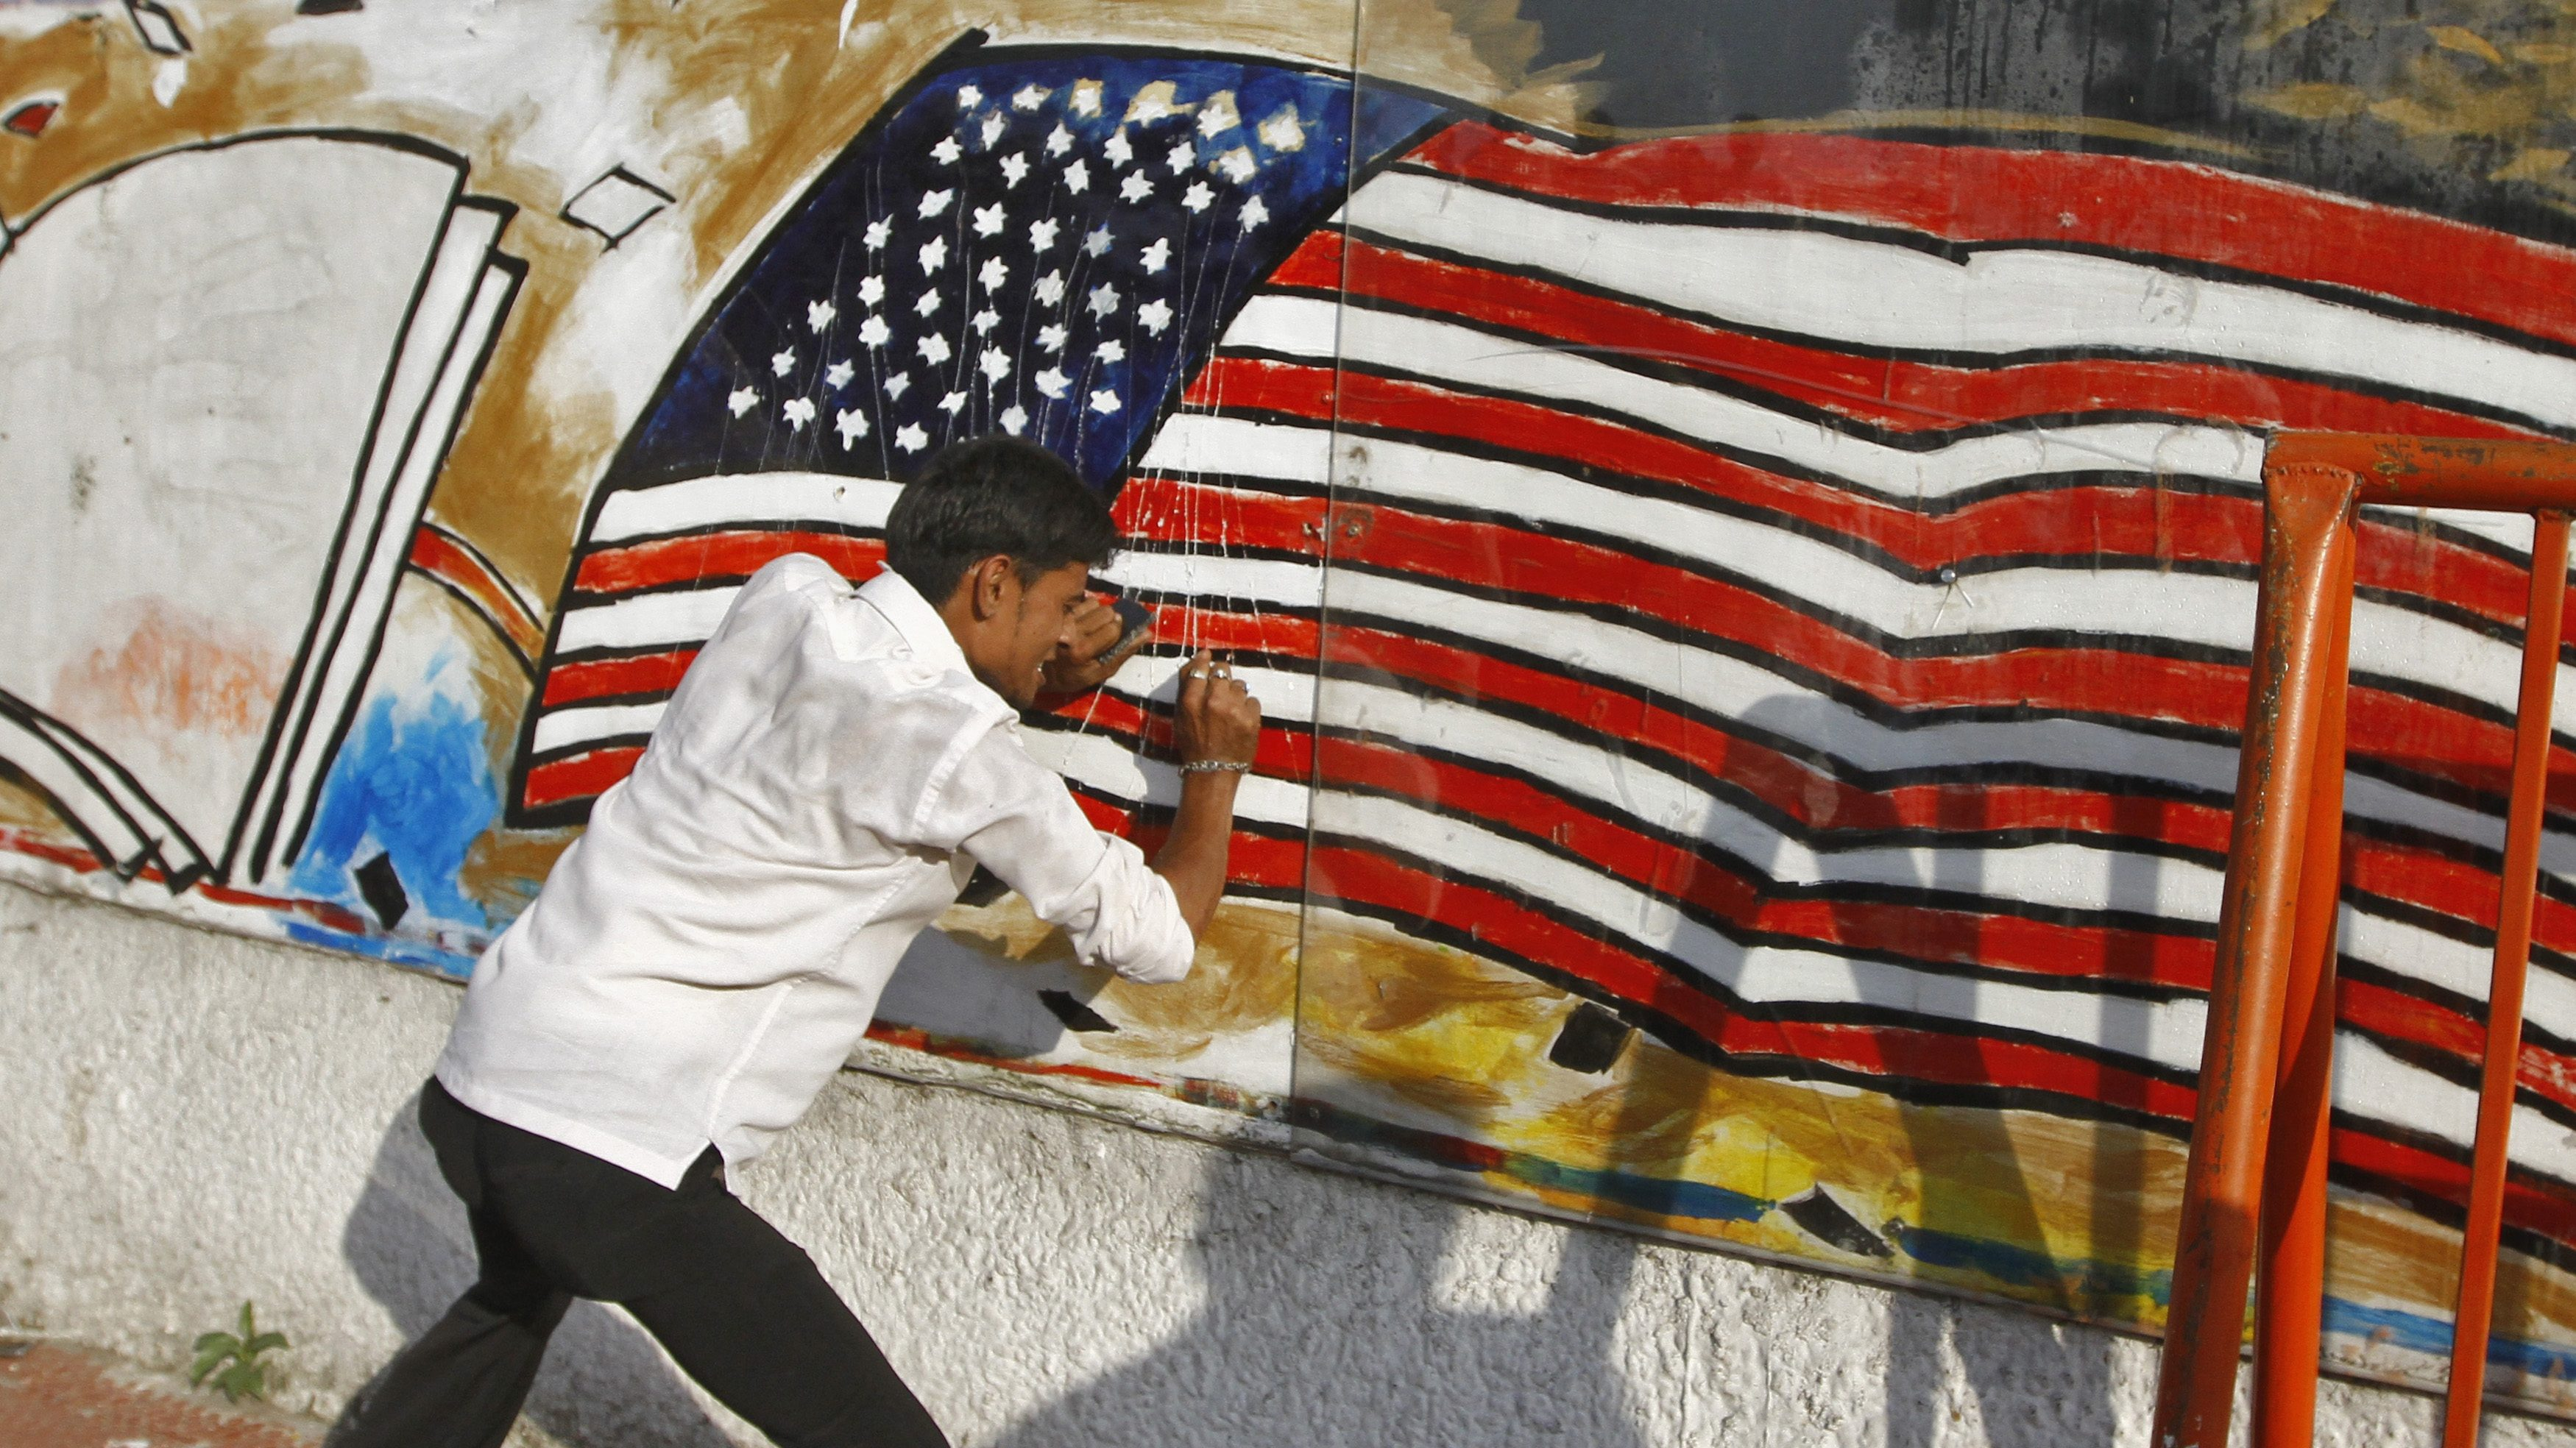 A Muslim protester defaces a mural featuring a U.S. flag on wall of U.S. Consulate-general during a protest against a film they consider blasphemous to Islam, in Chennai